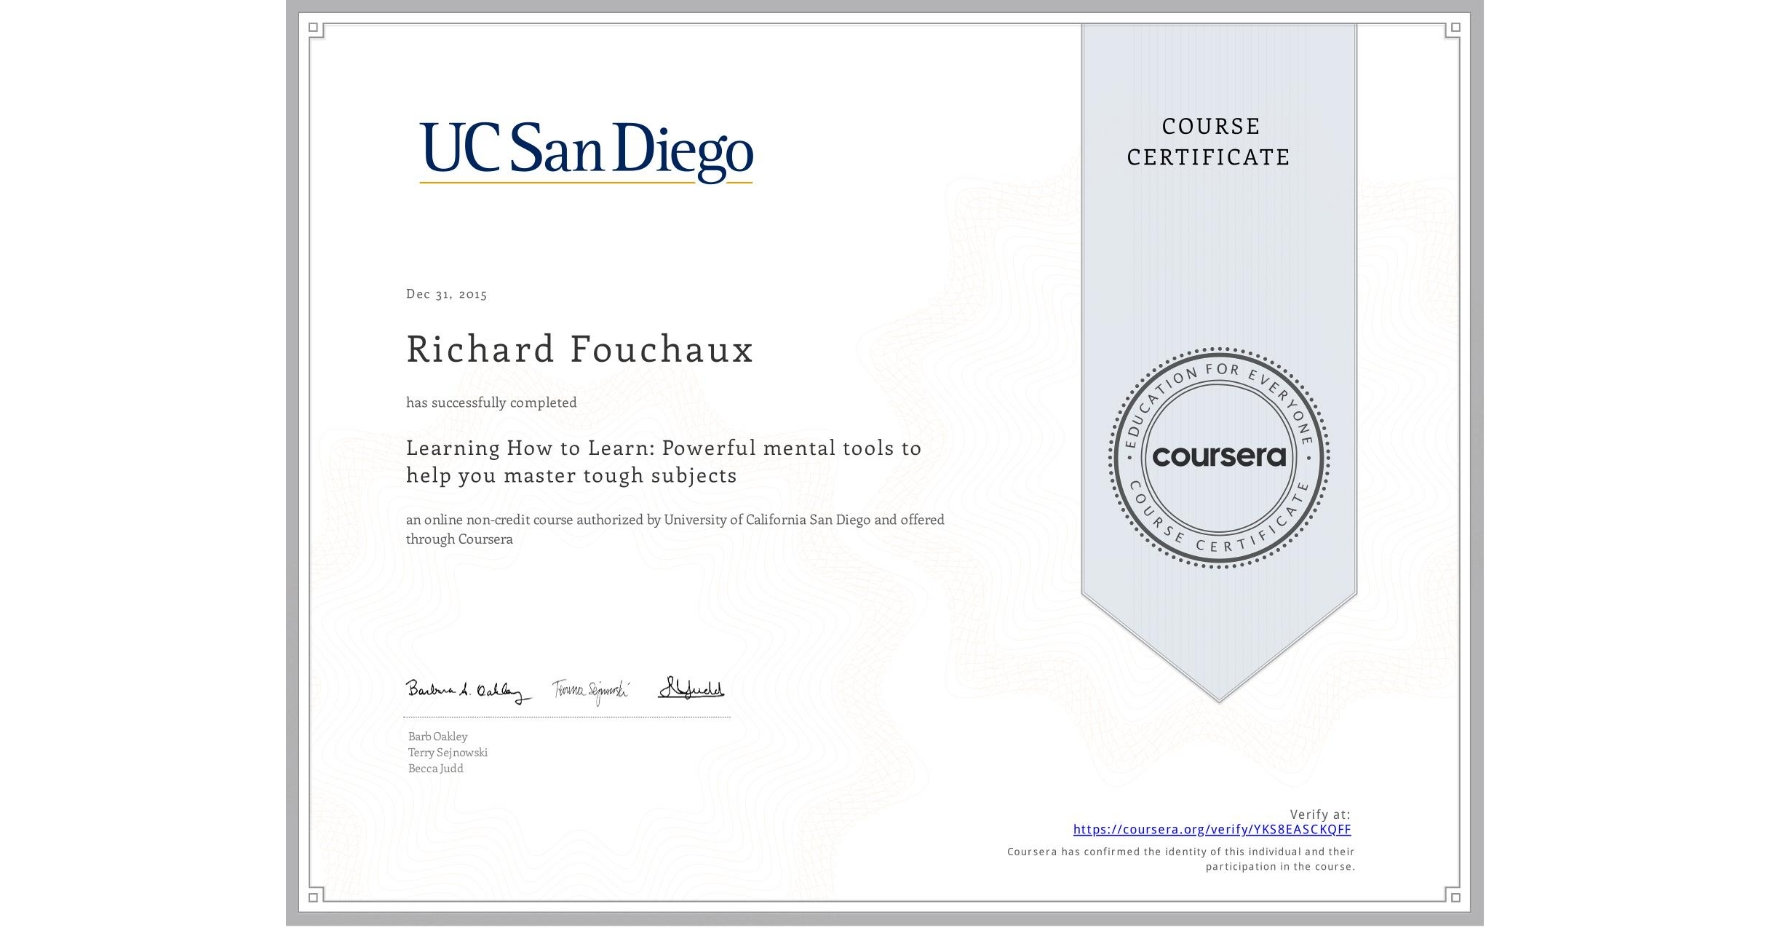 View certificate for Richard Fouchaux, Learning How to Learn: Powerful mental tools to help you master tough subjects, an online non-credit course authorized by McMaster University & University of California San Diego and offered through Coursera